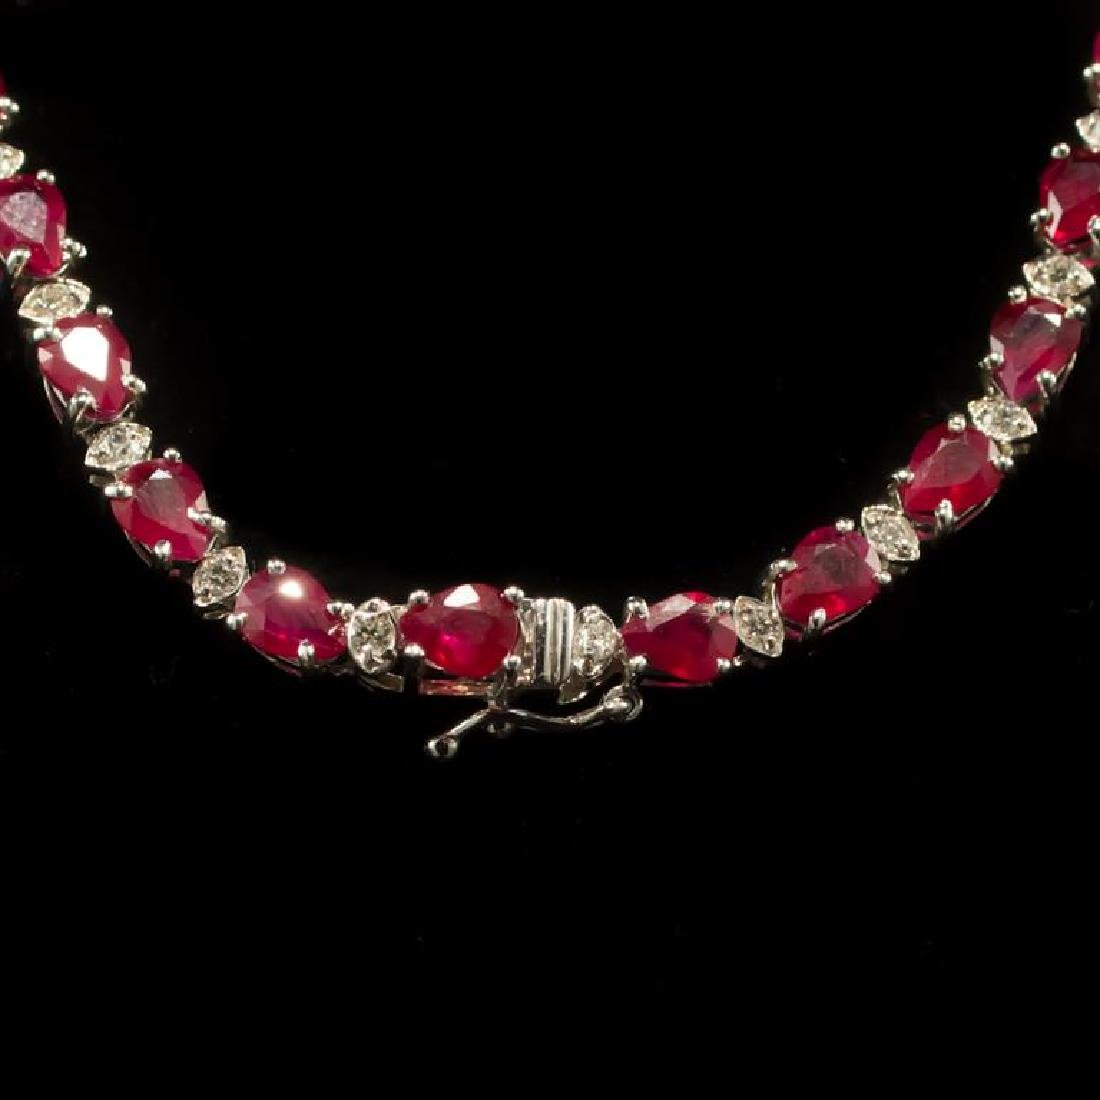 14k Gold 27.74ct Ruby 3.21ct Diamond Necklace - 3